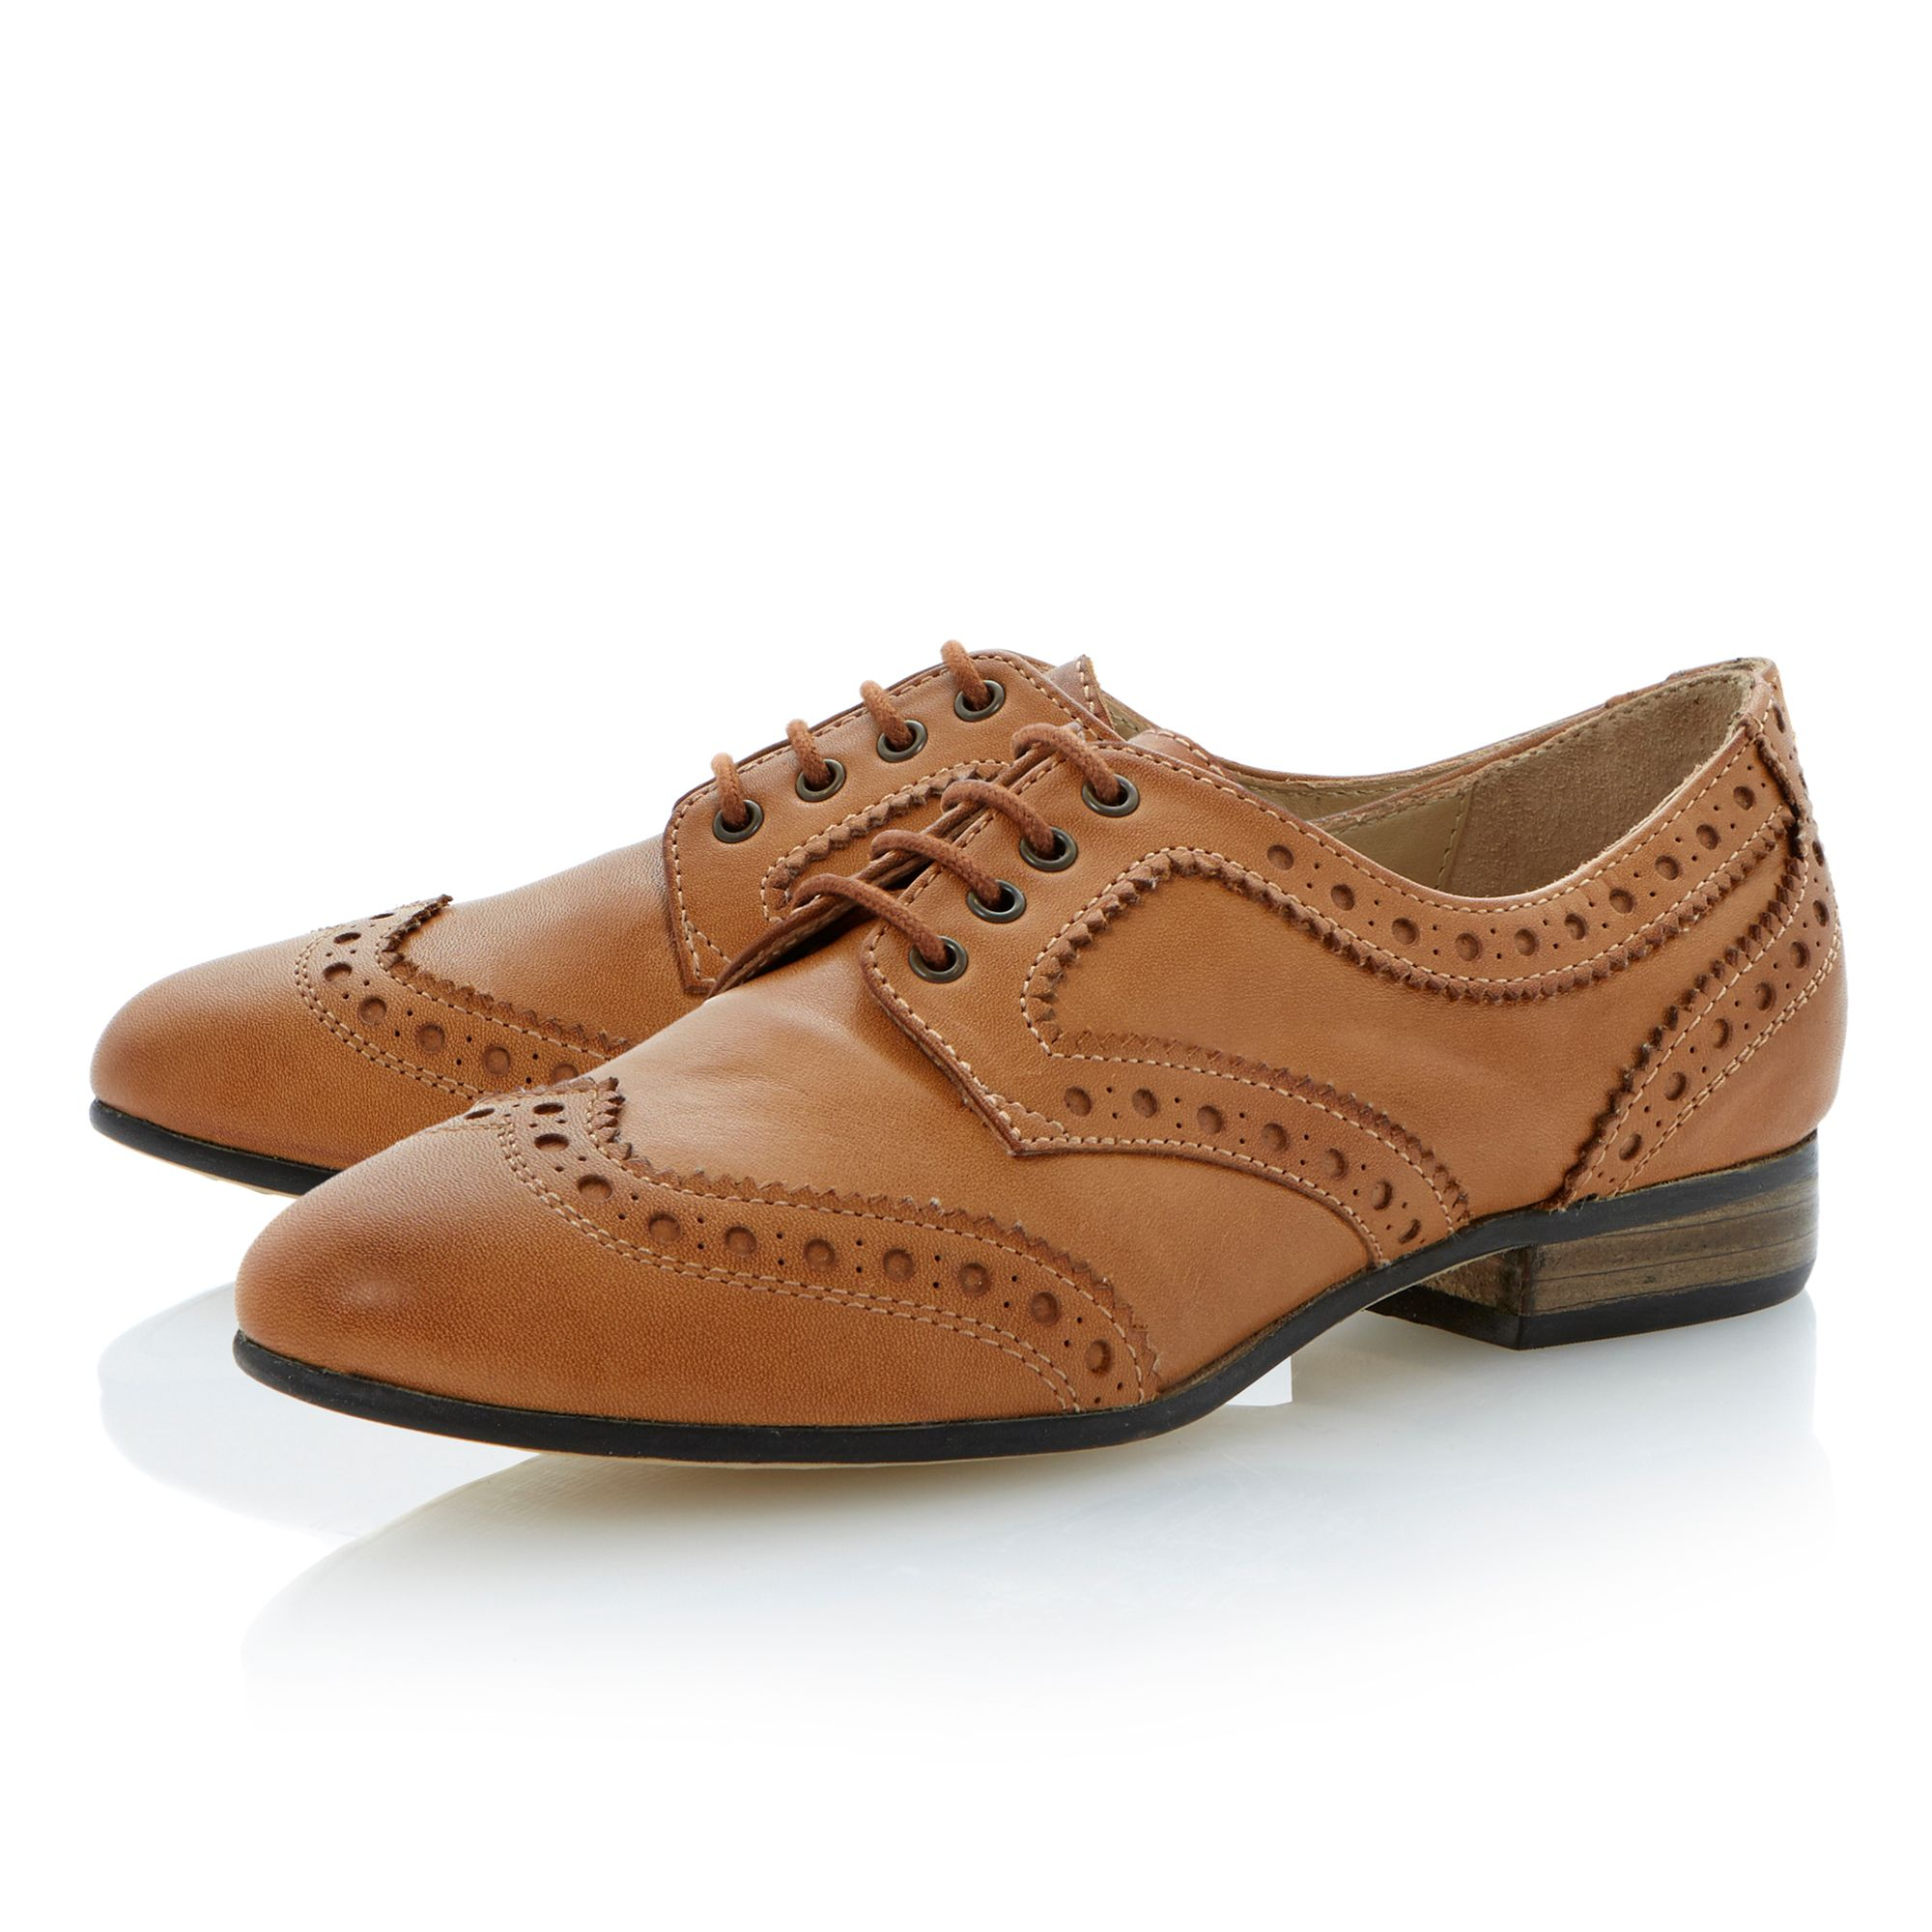 Linford leather almond toe stacked brogue shoes